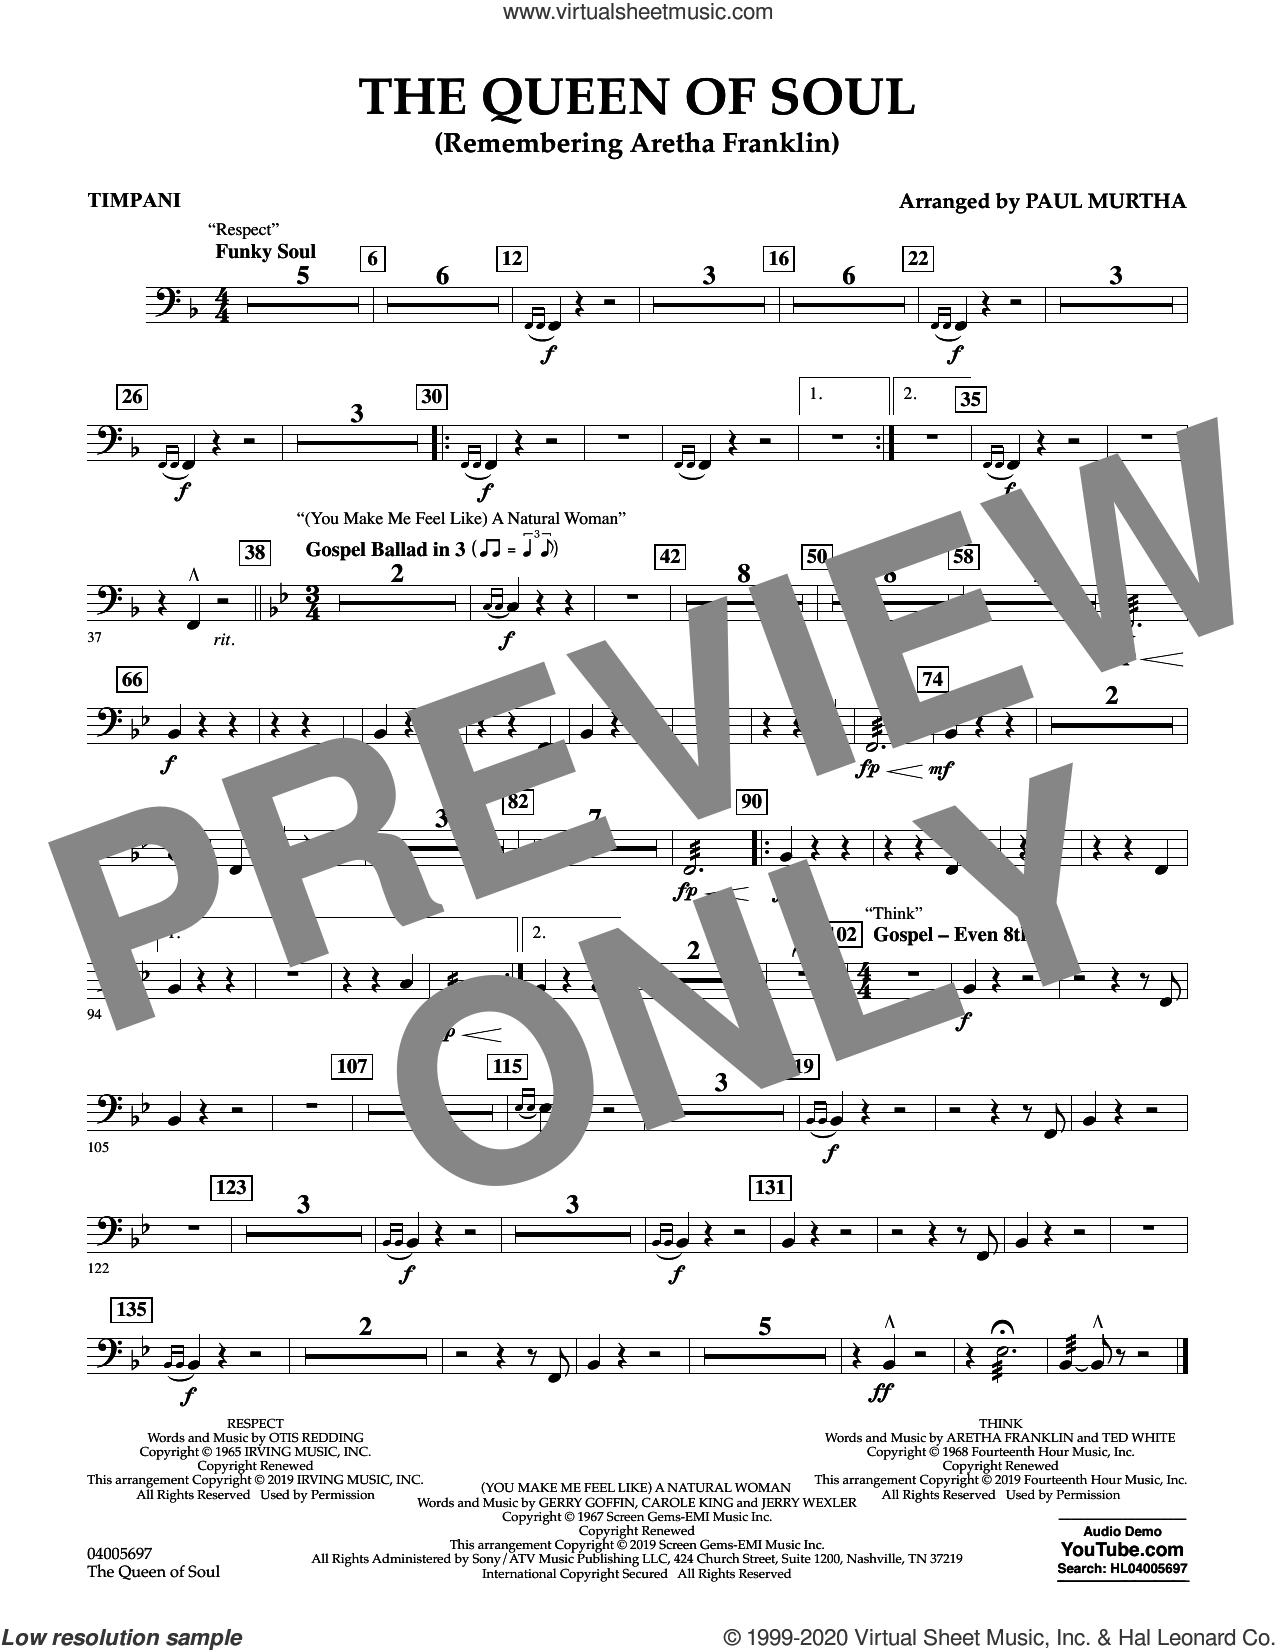 The Queen Of Soul (arr. Paul Murtha)- Conductor Score (Full Score) sheet music for concert band (timpani) by Aretha Franklin and Paul Murtha, intermediate skill level